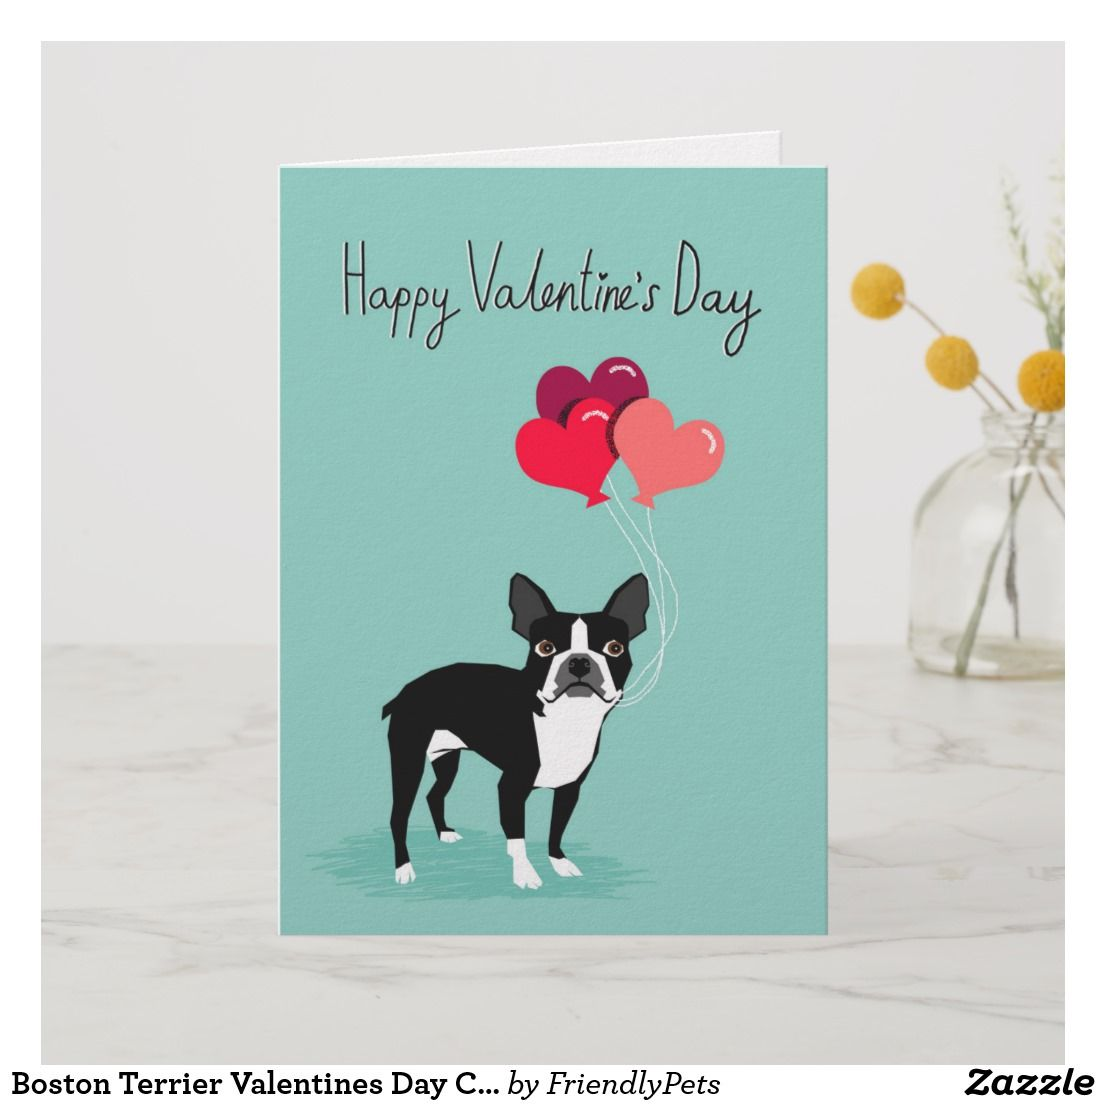 Boston Terrier Valentines Day Card Cute Dog Card Zazzle Com Dog Cards Dog Valentines Funniest Valentines Cards